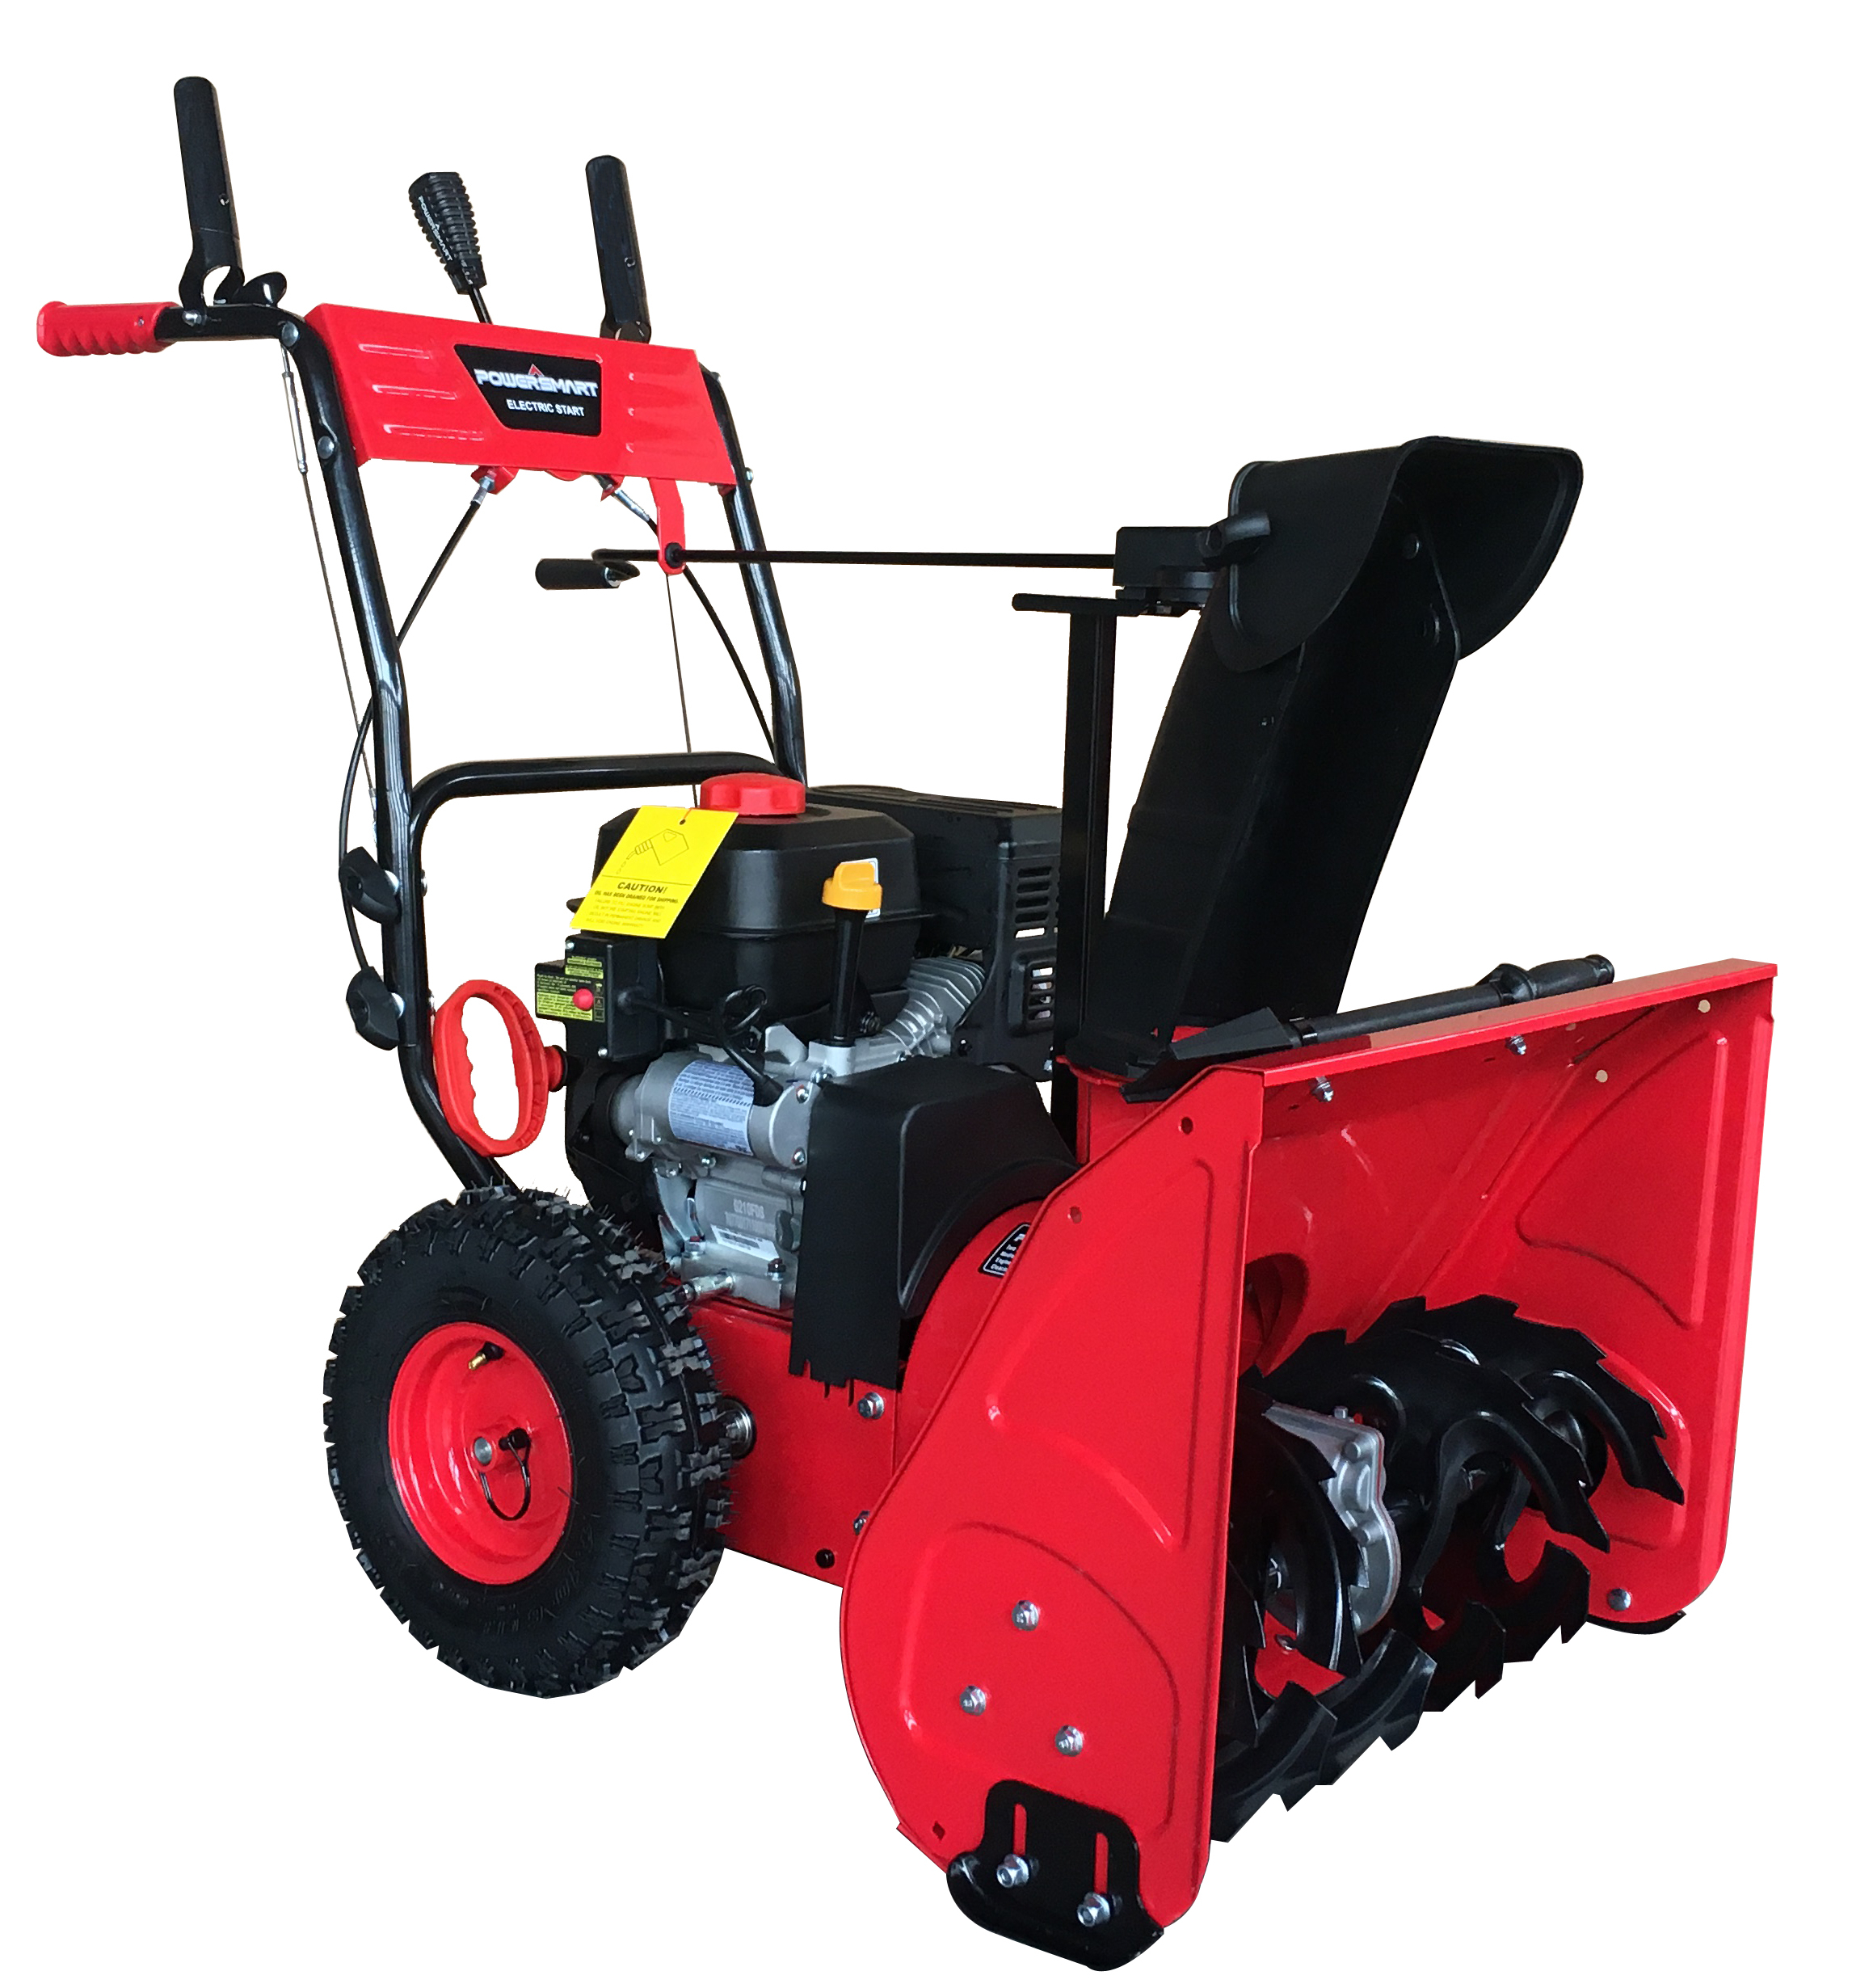 PowerSmart DB7279 24inch Two Stage Gas Snow Blower with Electric Start -  Walmart.com - Walmart.com